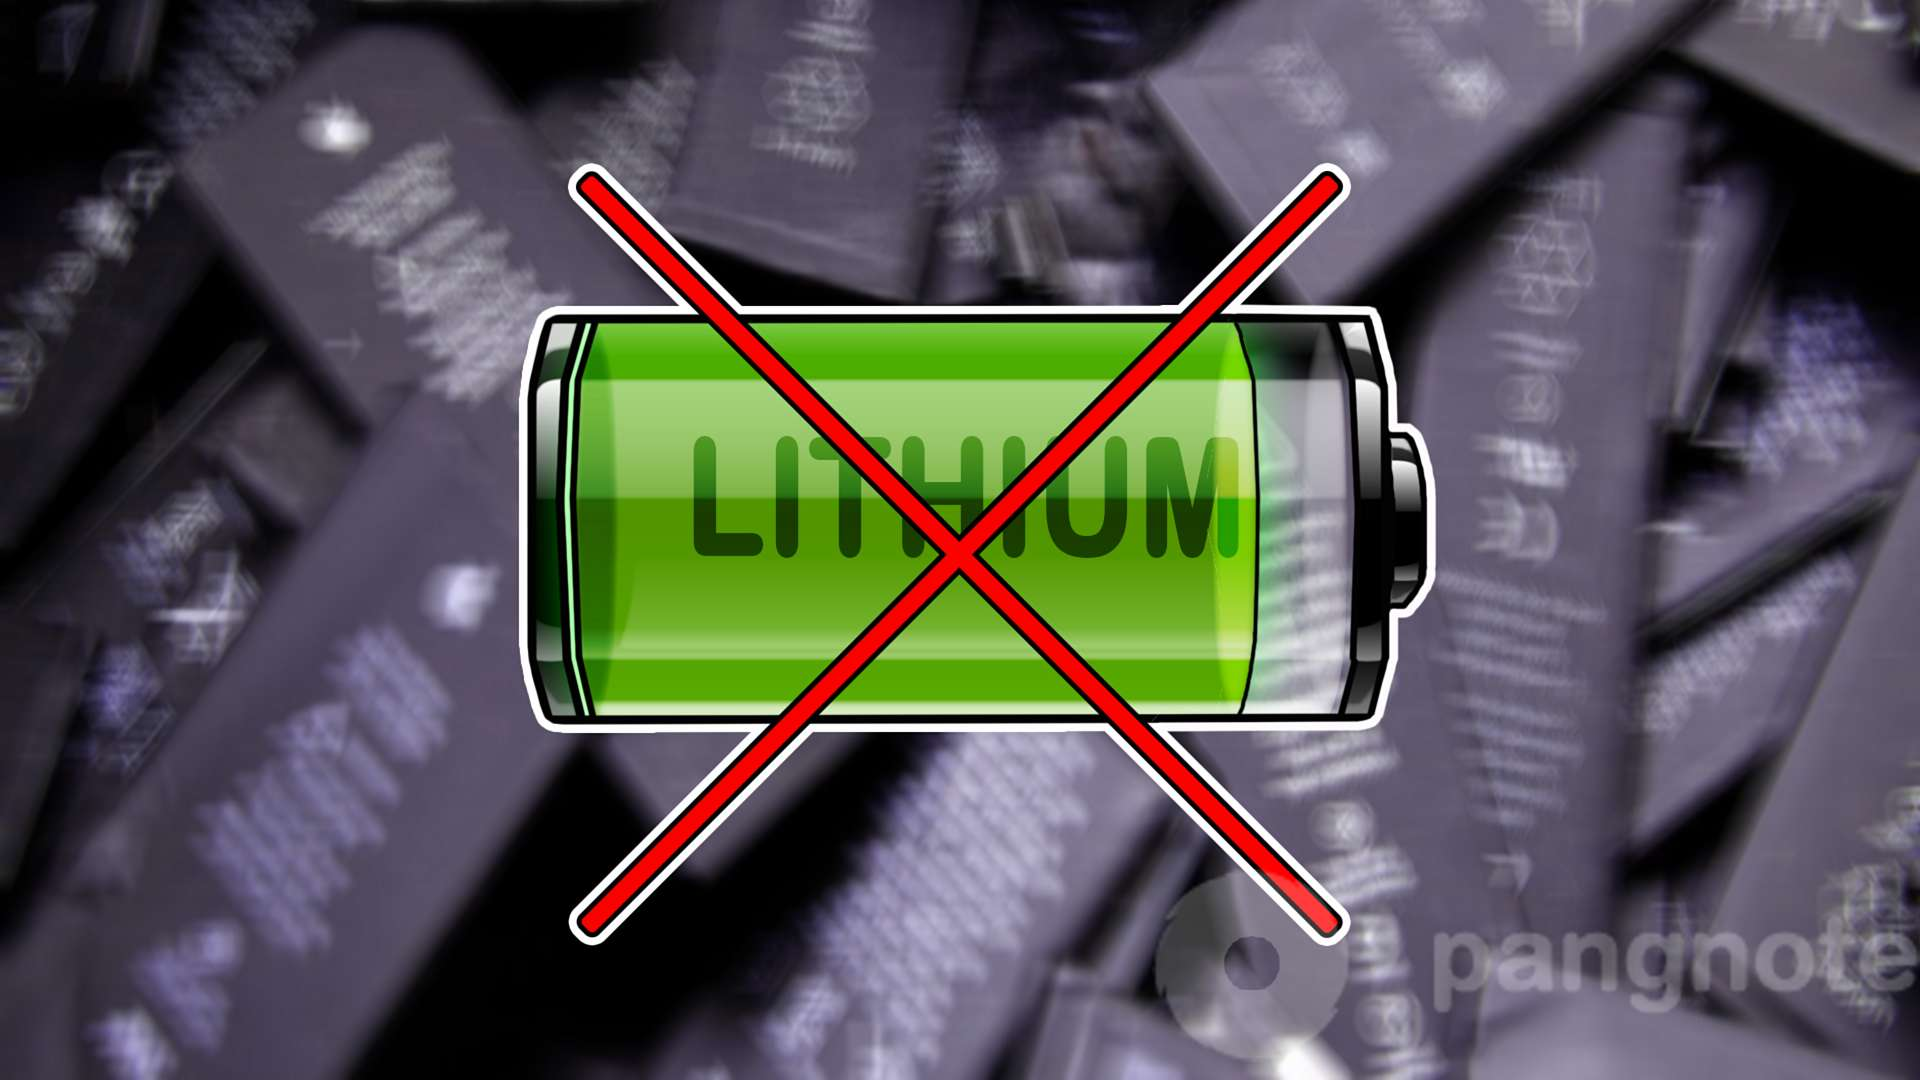 Replacing lithium: new battery technologies